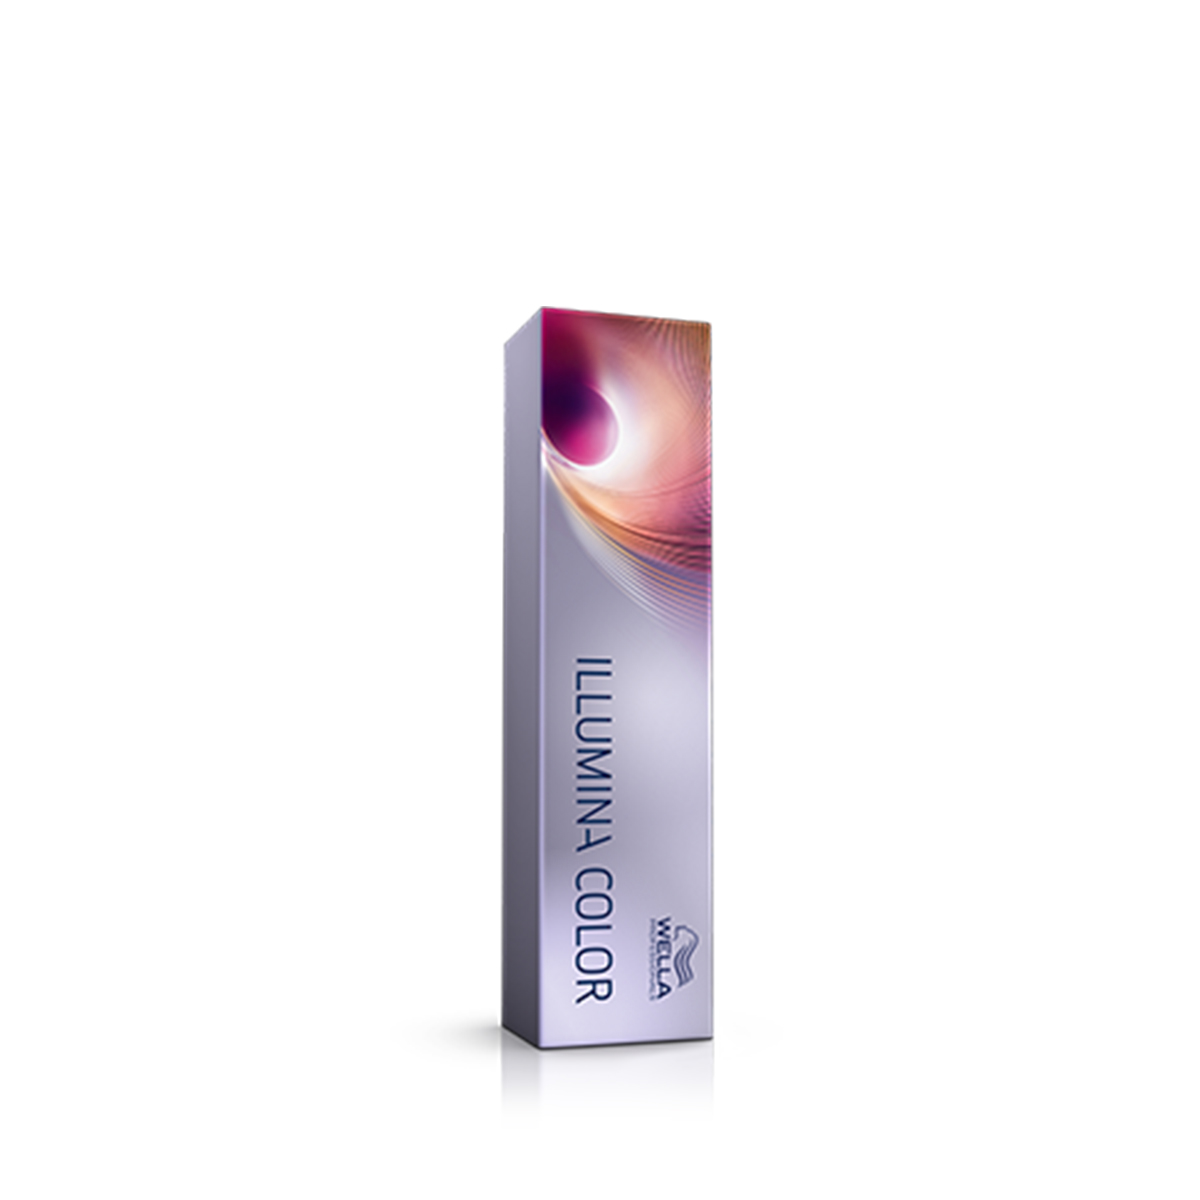 Illumina Color 60 Ml Biondo Chiarissimo Rame Dorato